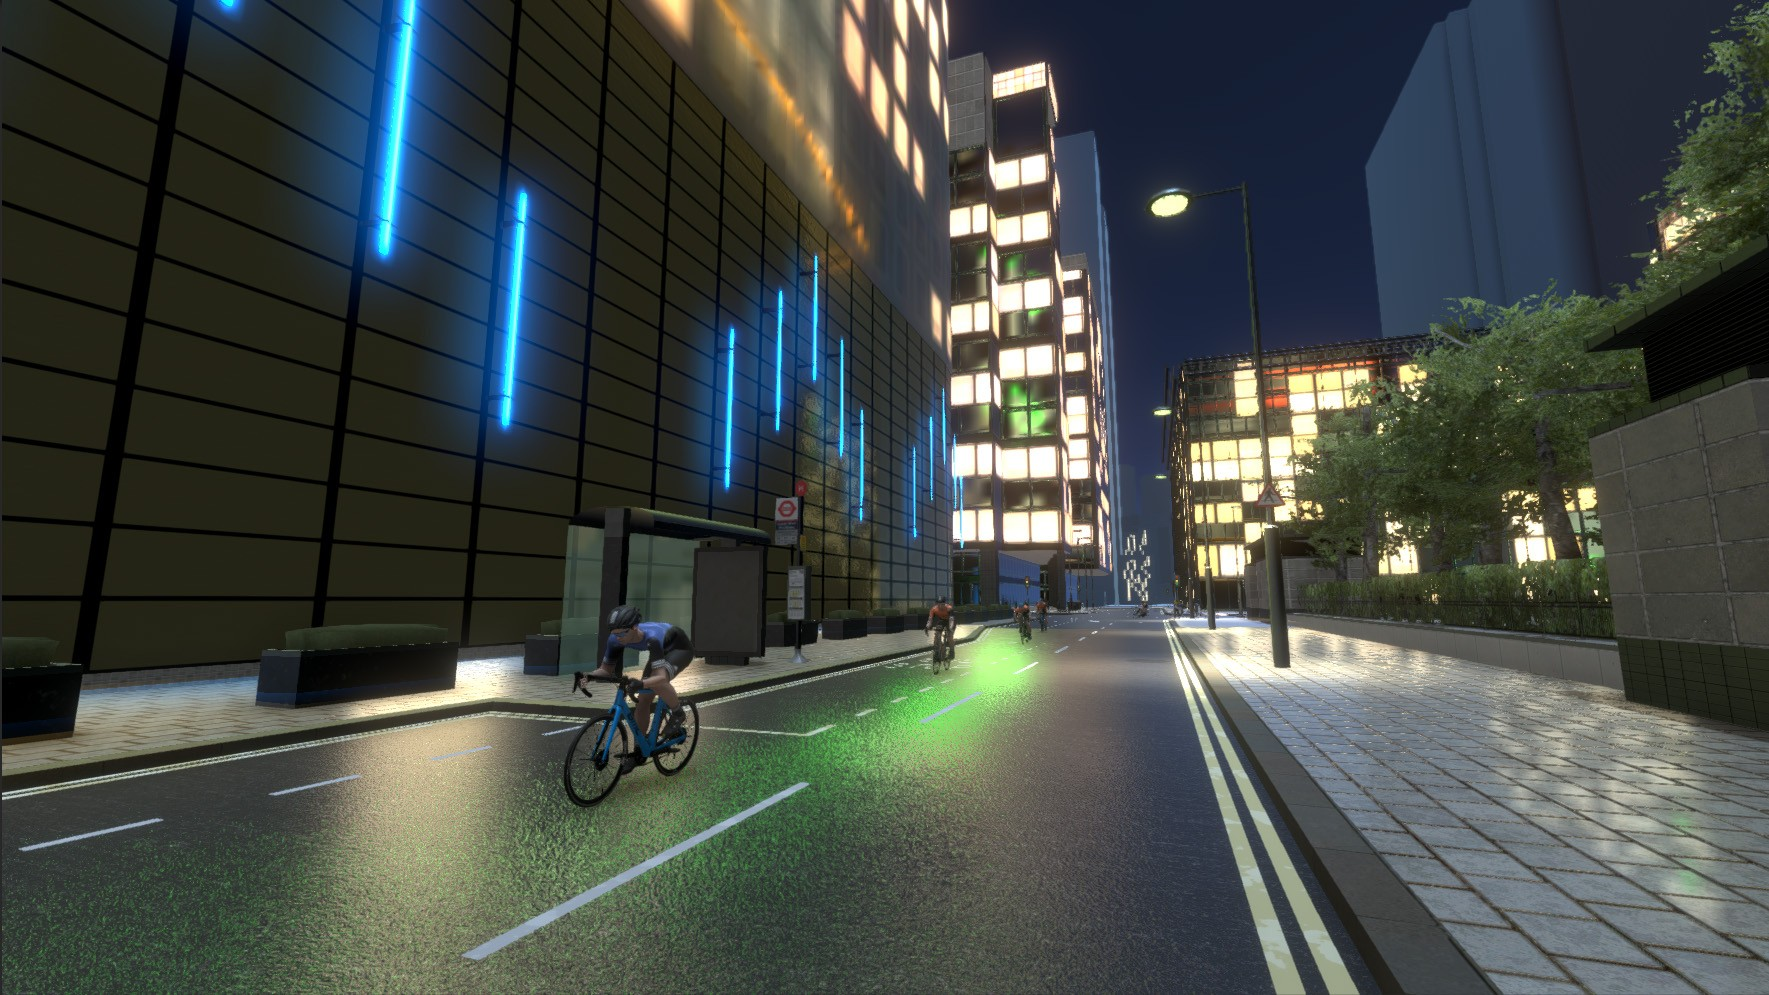 Canary Wharf provides the setting for an urban crit course